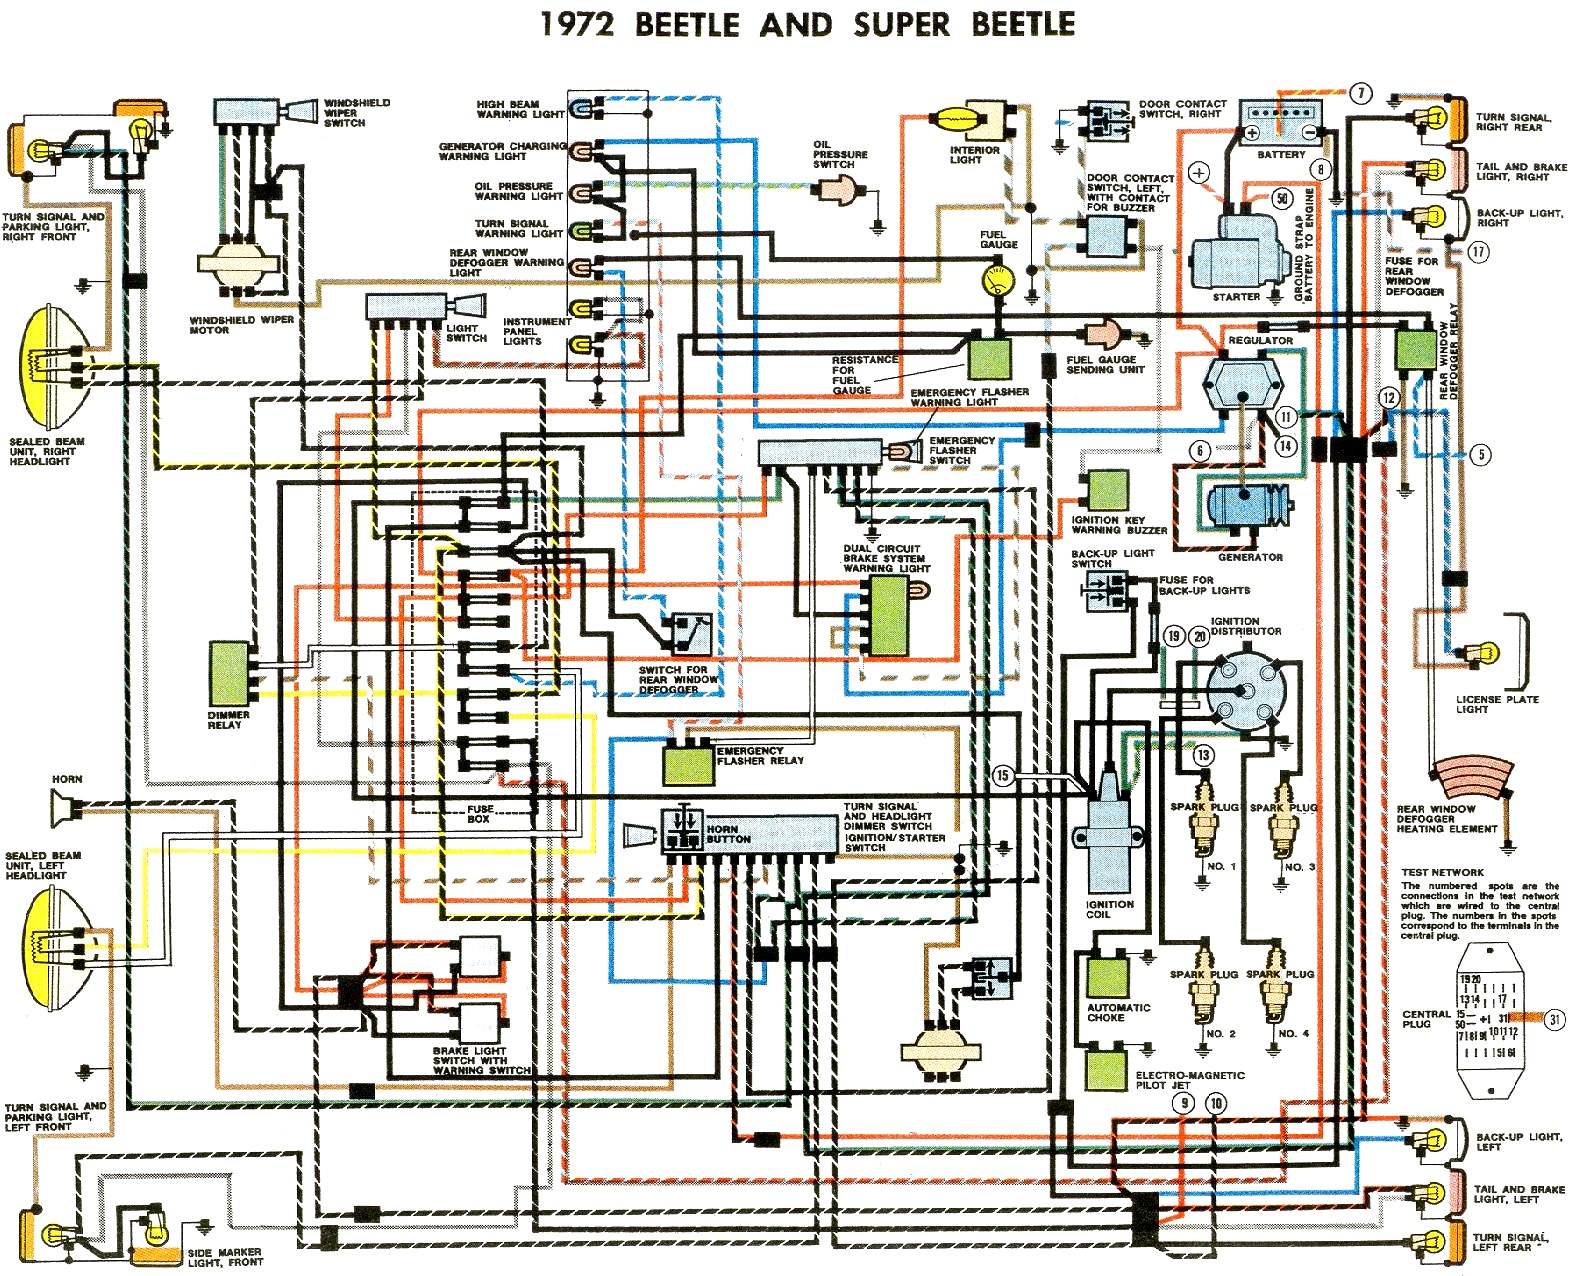 bug_72 vw golf mk7 wiring diagram vw wiring diagrams instruction vw golf mk4 wiring diagram at edmiracle.co